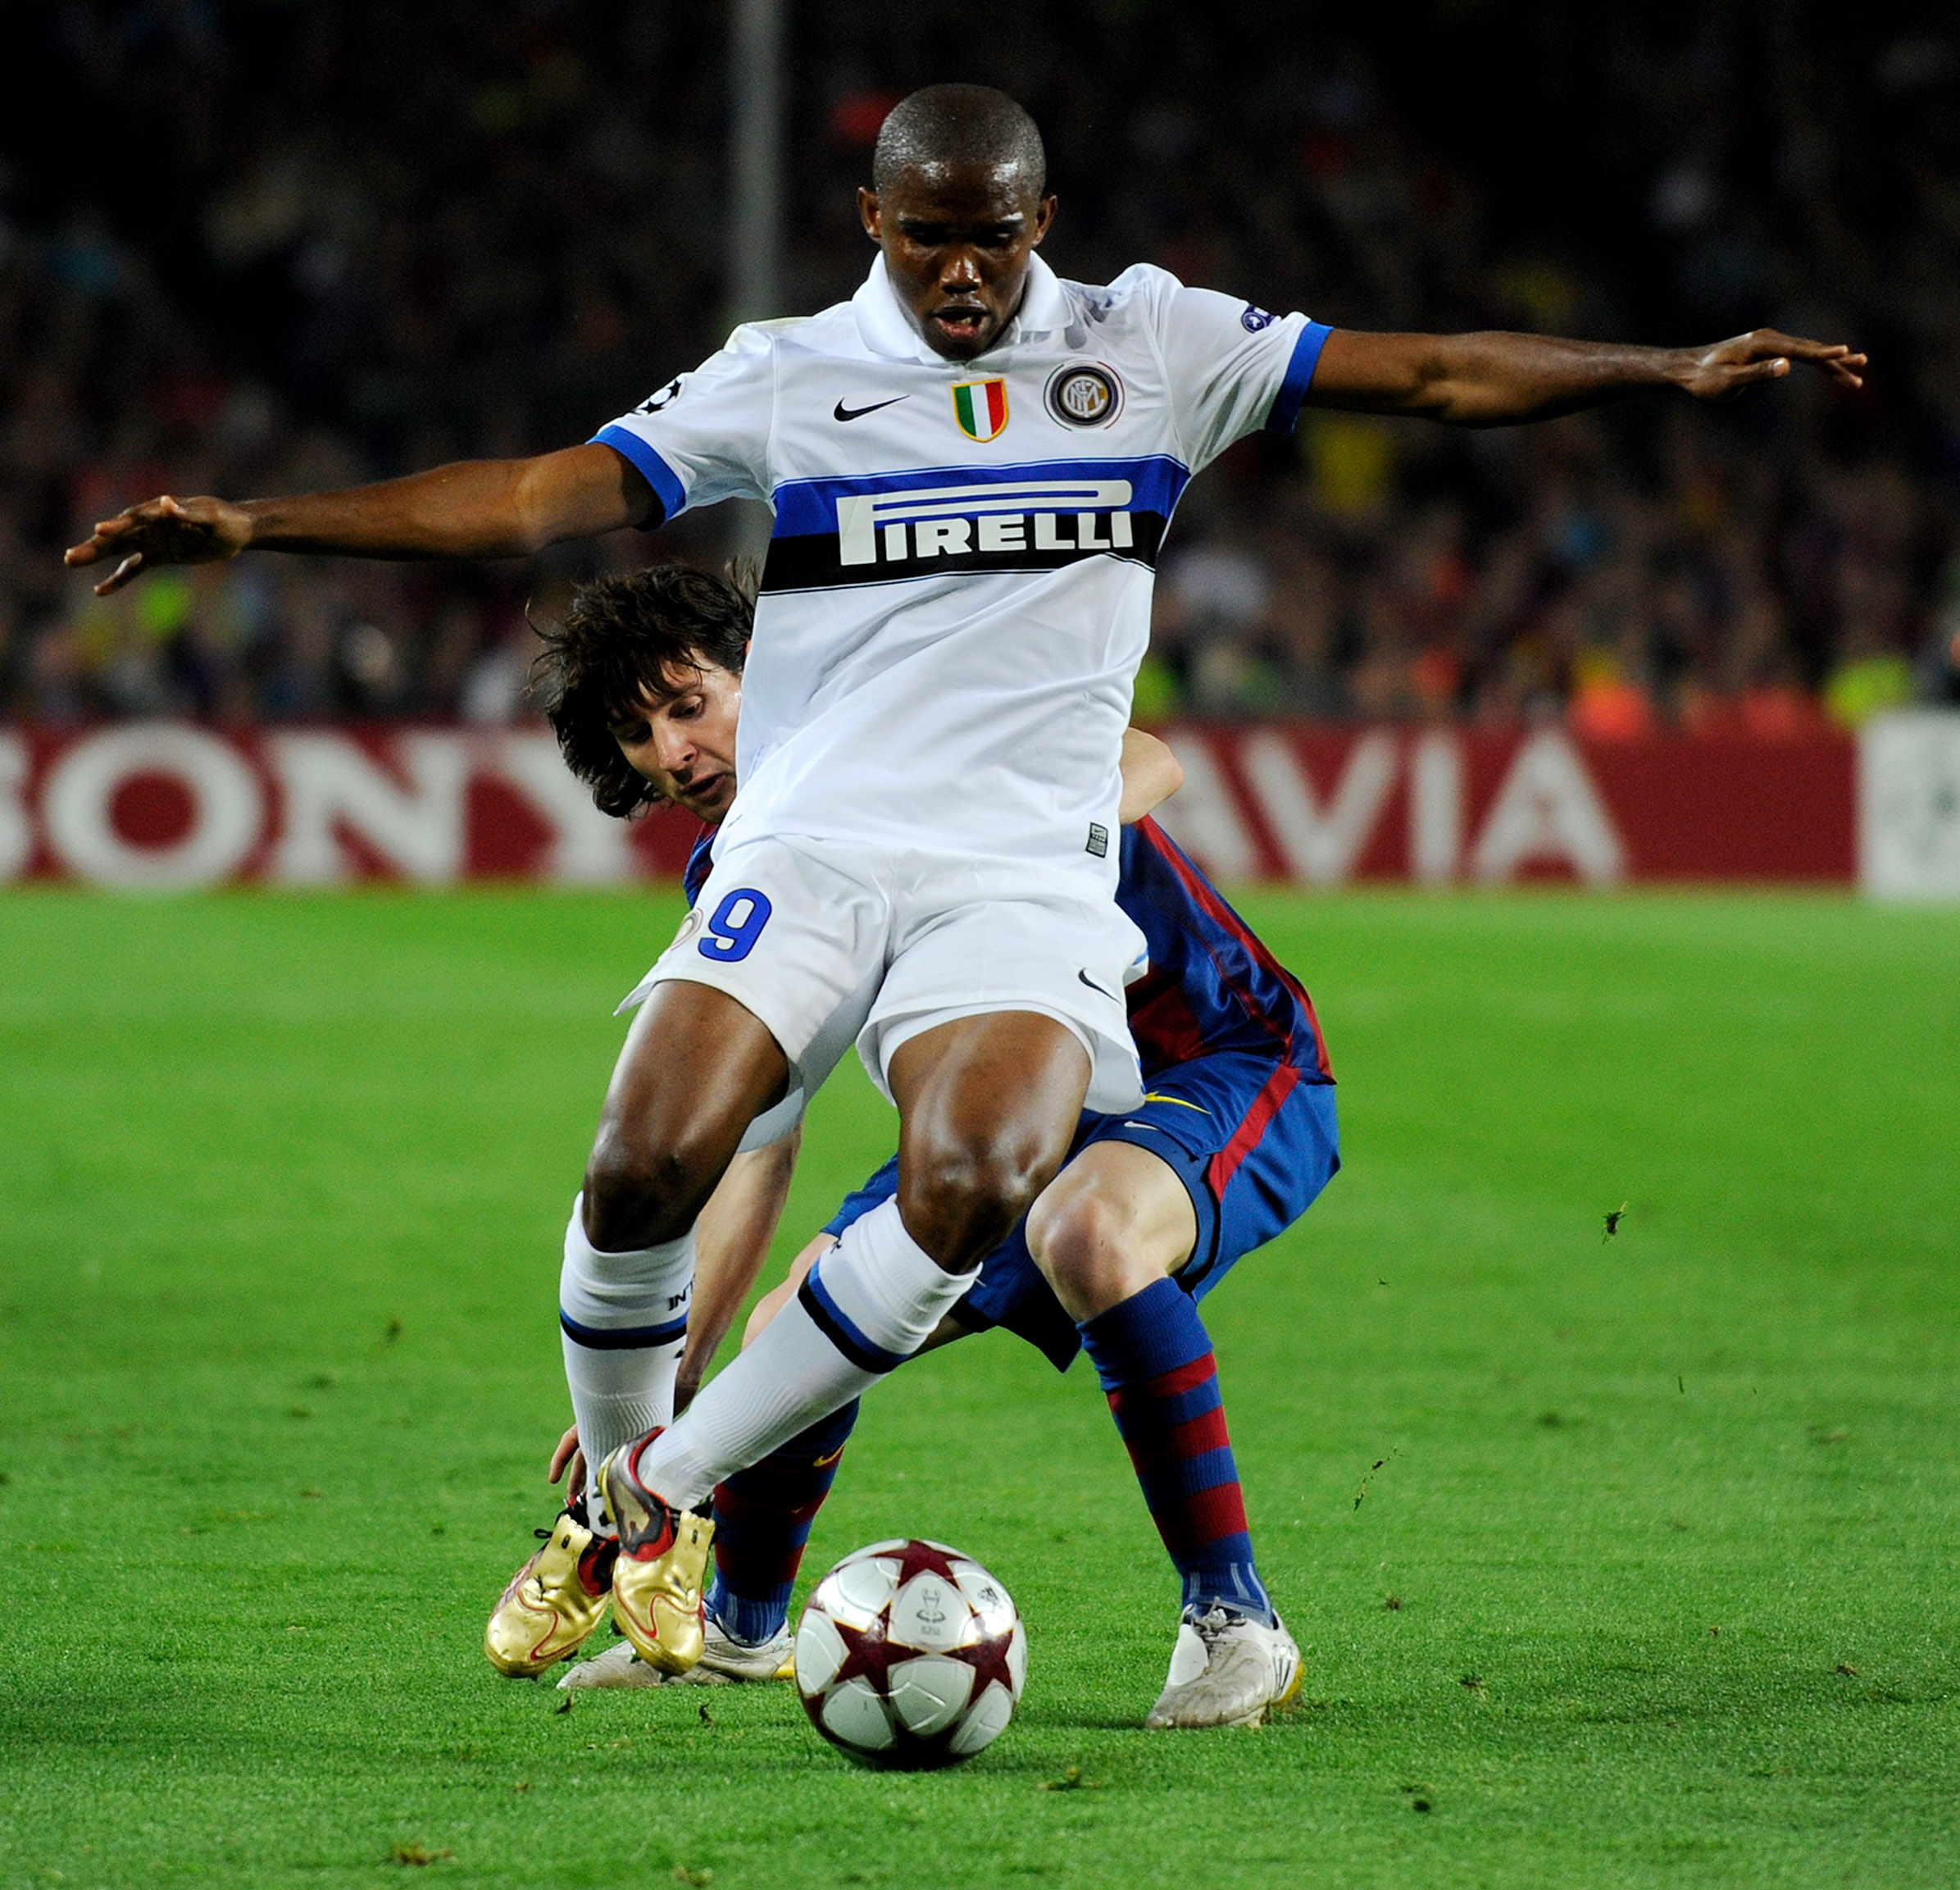 Samuel Eto'o holds off a challenge by Lionel Messi in the 2010 Champions League semi-final